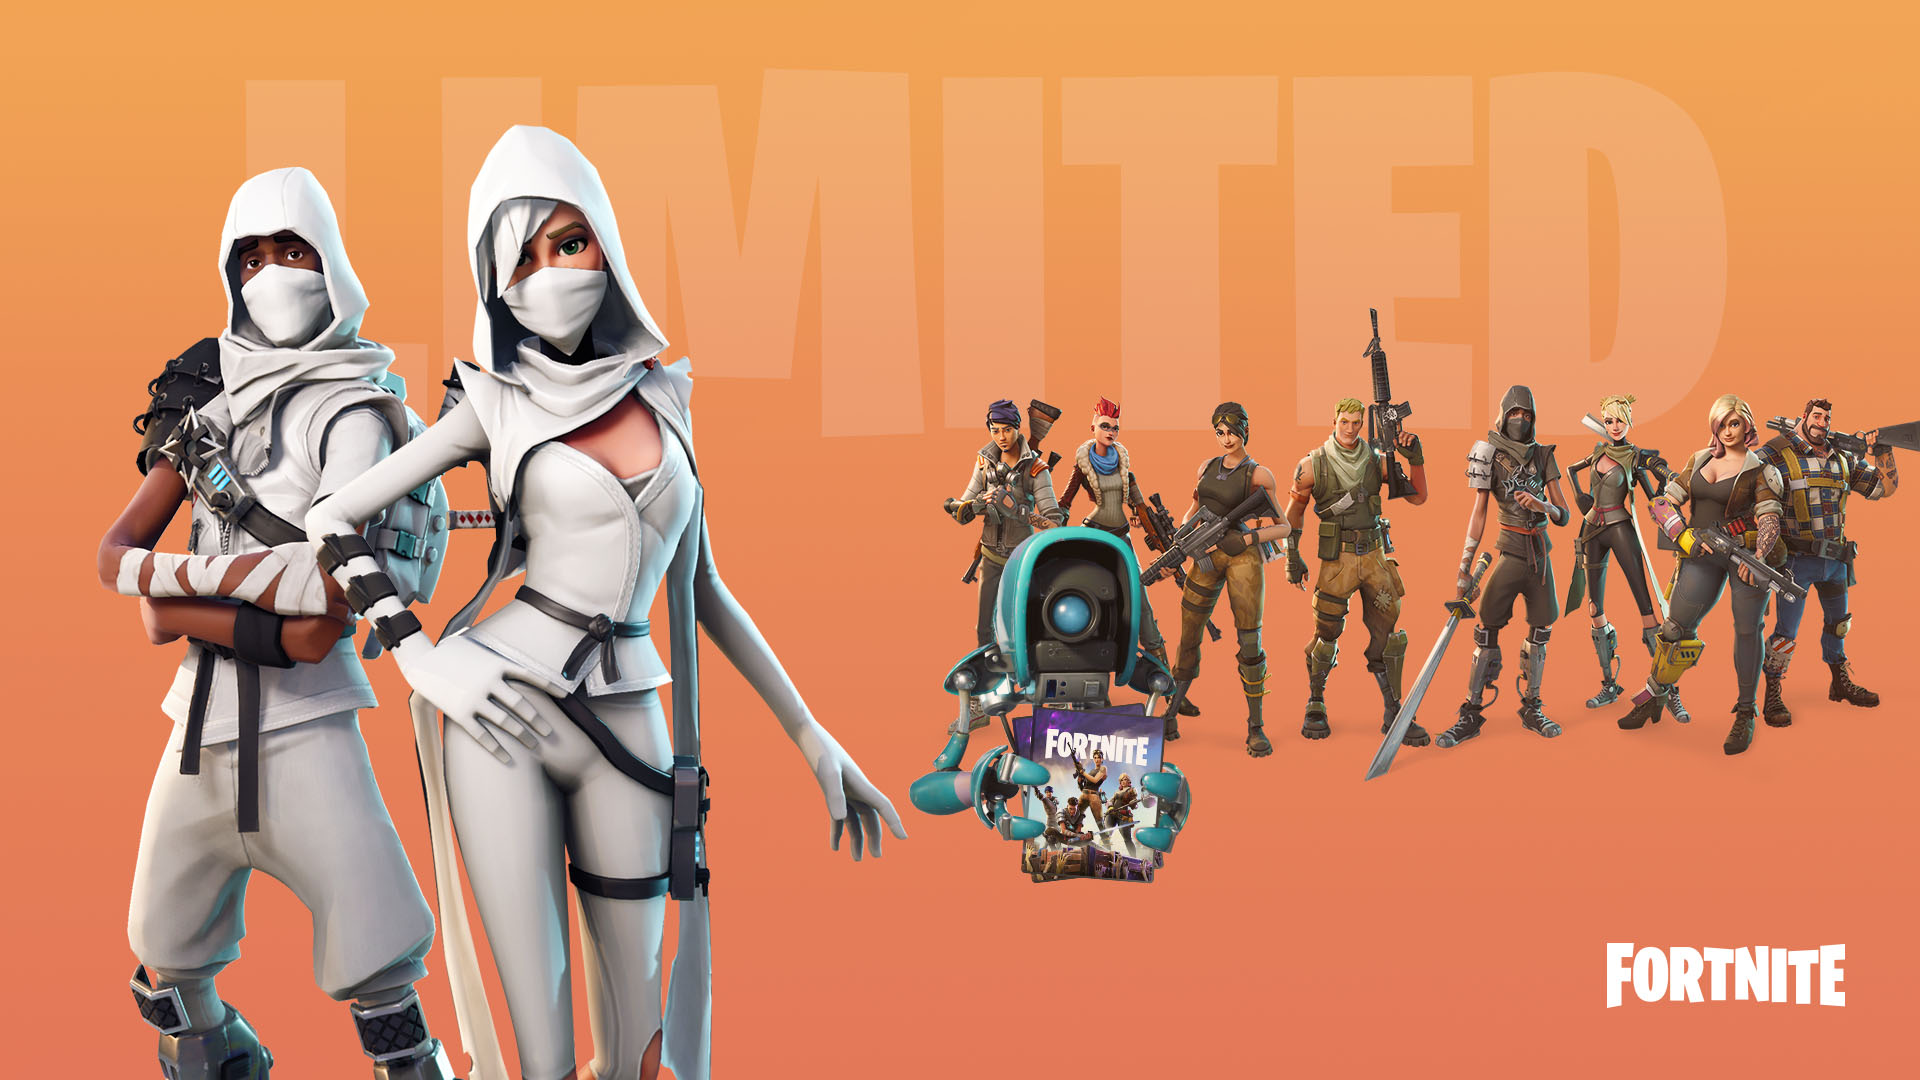 Fortnite%2Fblog%2Ffounders-packs-are-here%2FLimitedFoundersPack_Fornite-1920x1080-d639fa26a8dd41f827c66839e39b7b51b8e69846